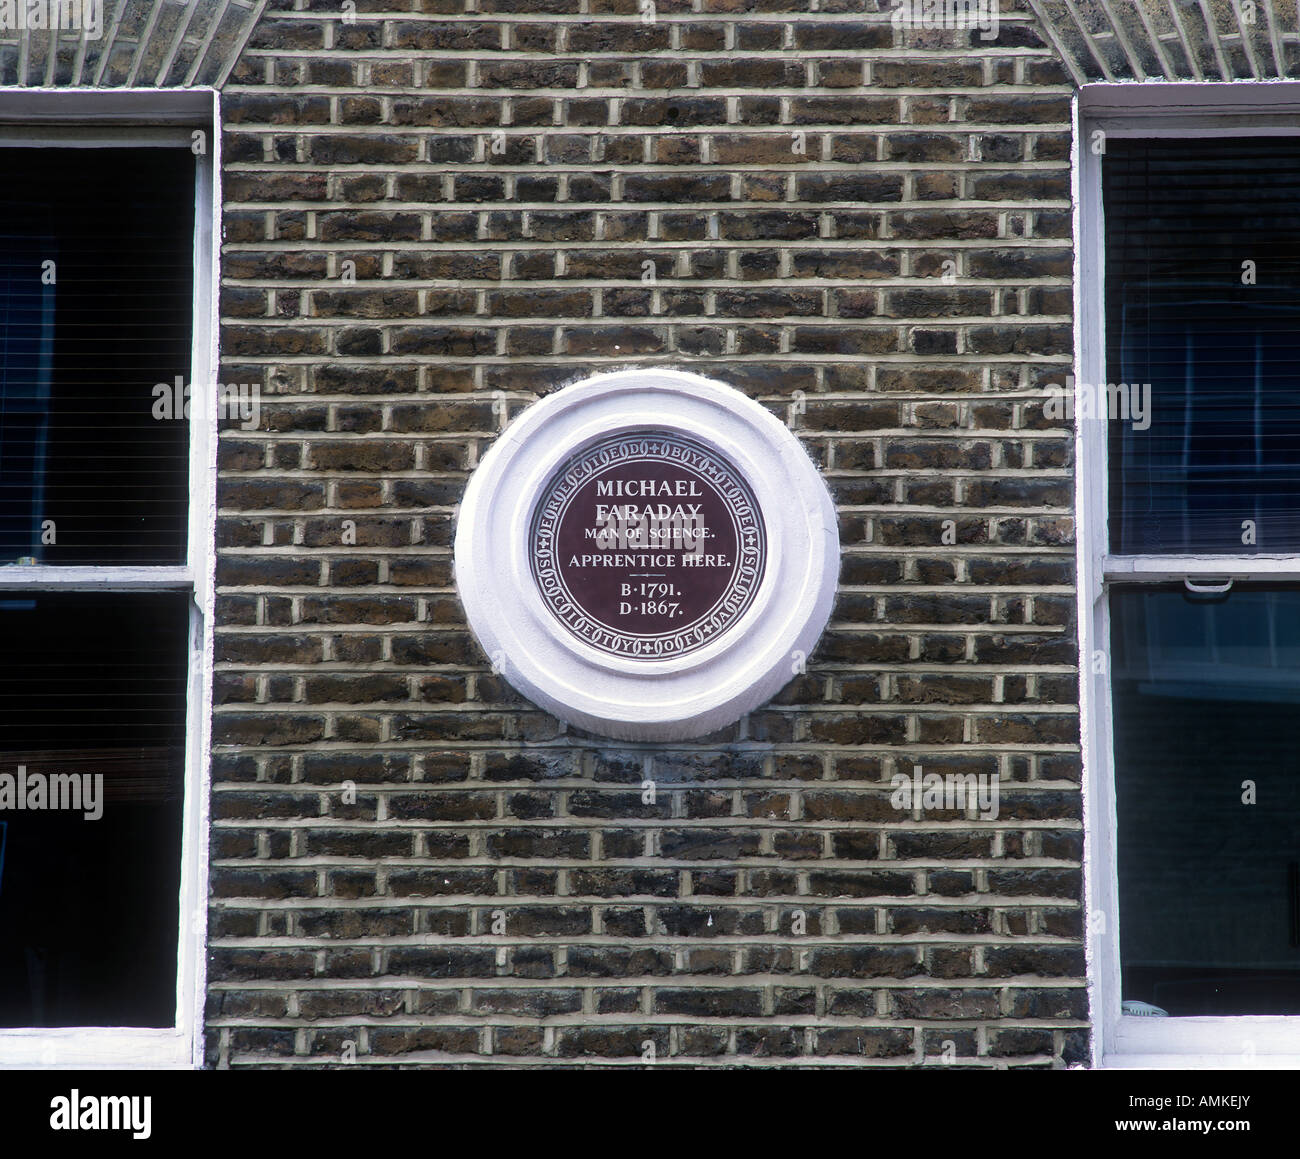 Commemorative sign for Michael Faraday on the wall of 48 Blandford St Marylebone, London W1, where he was once an - Stock Image